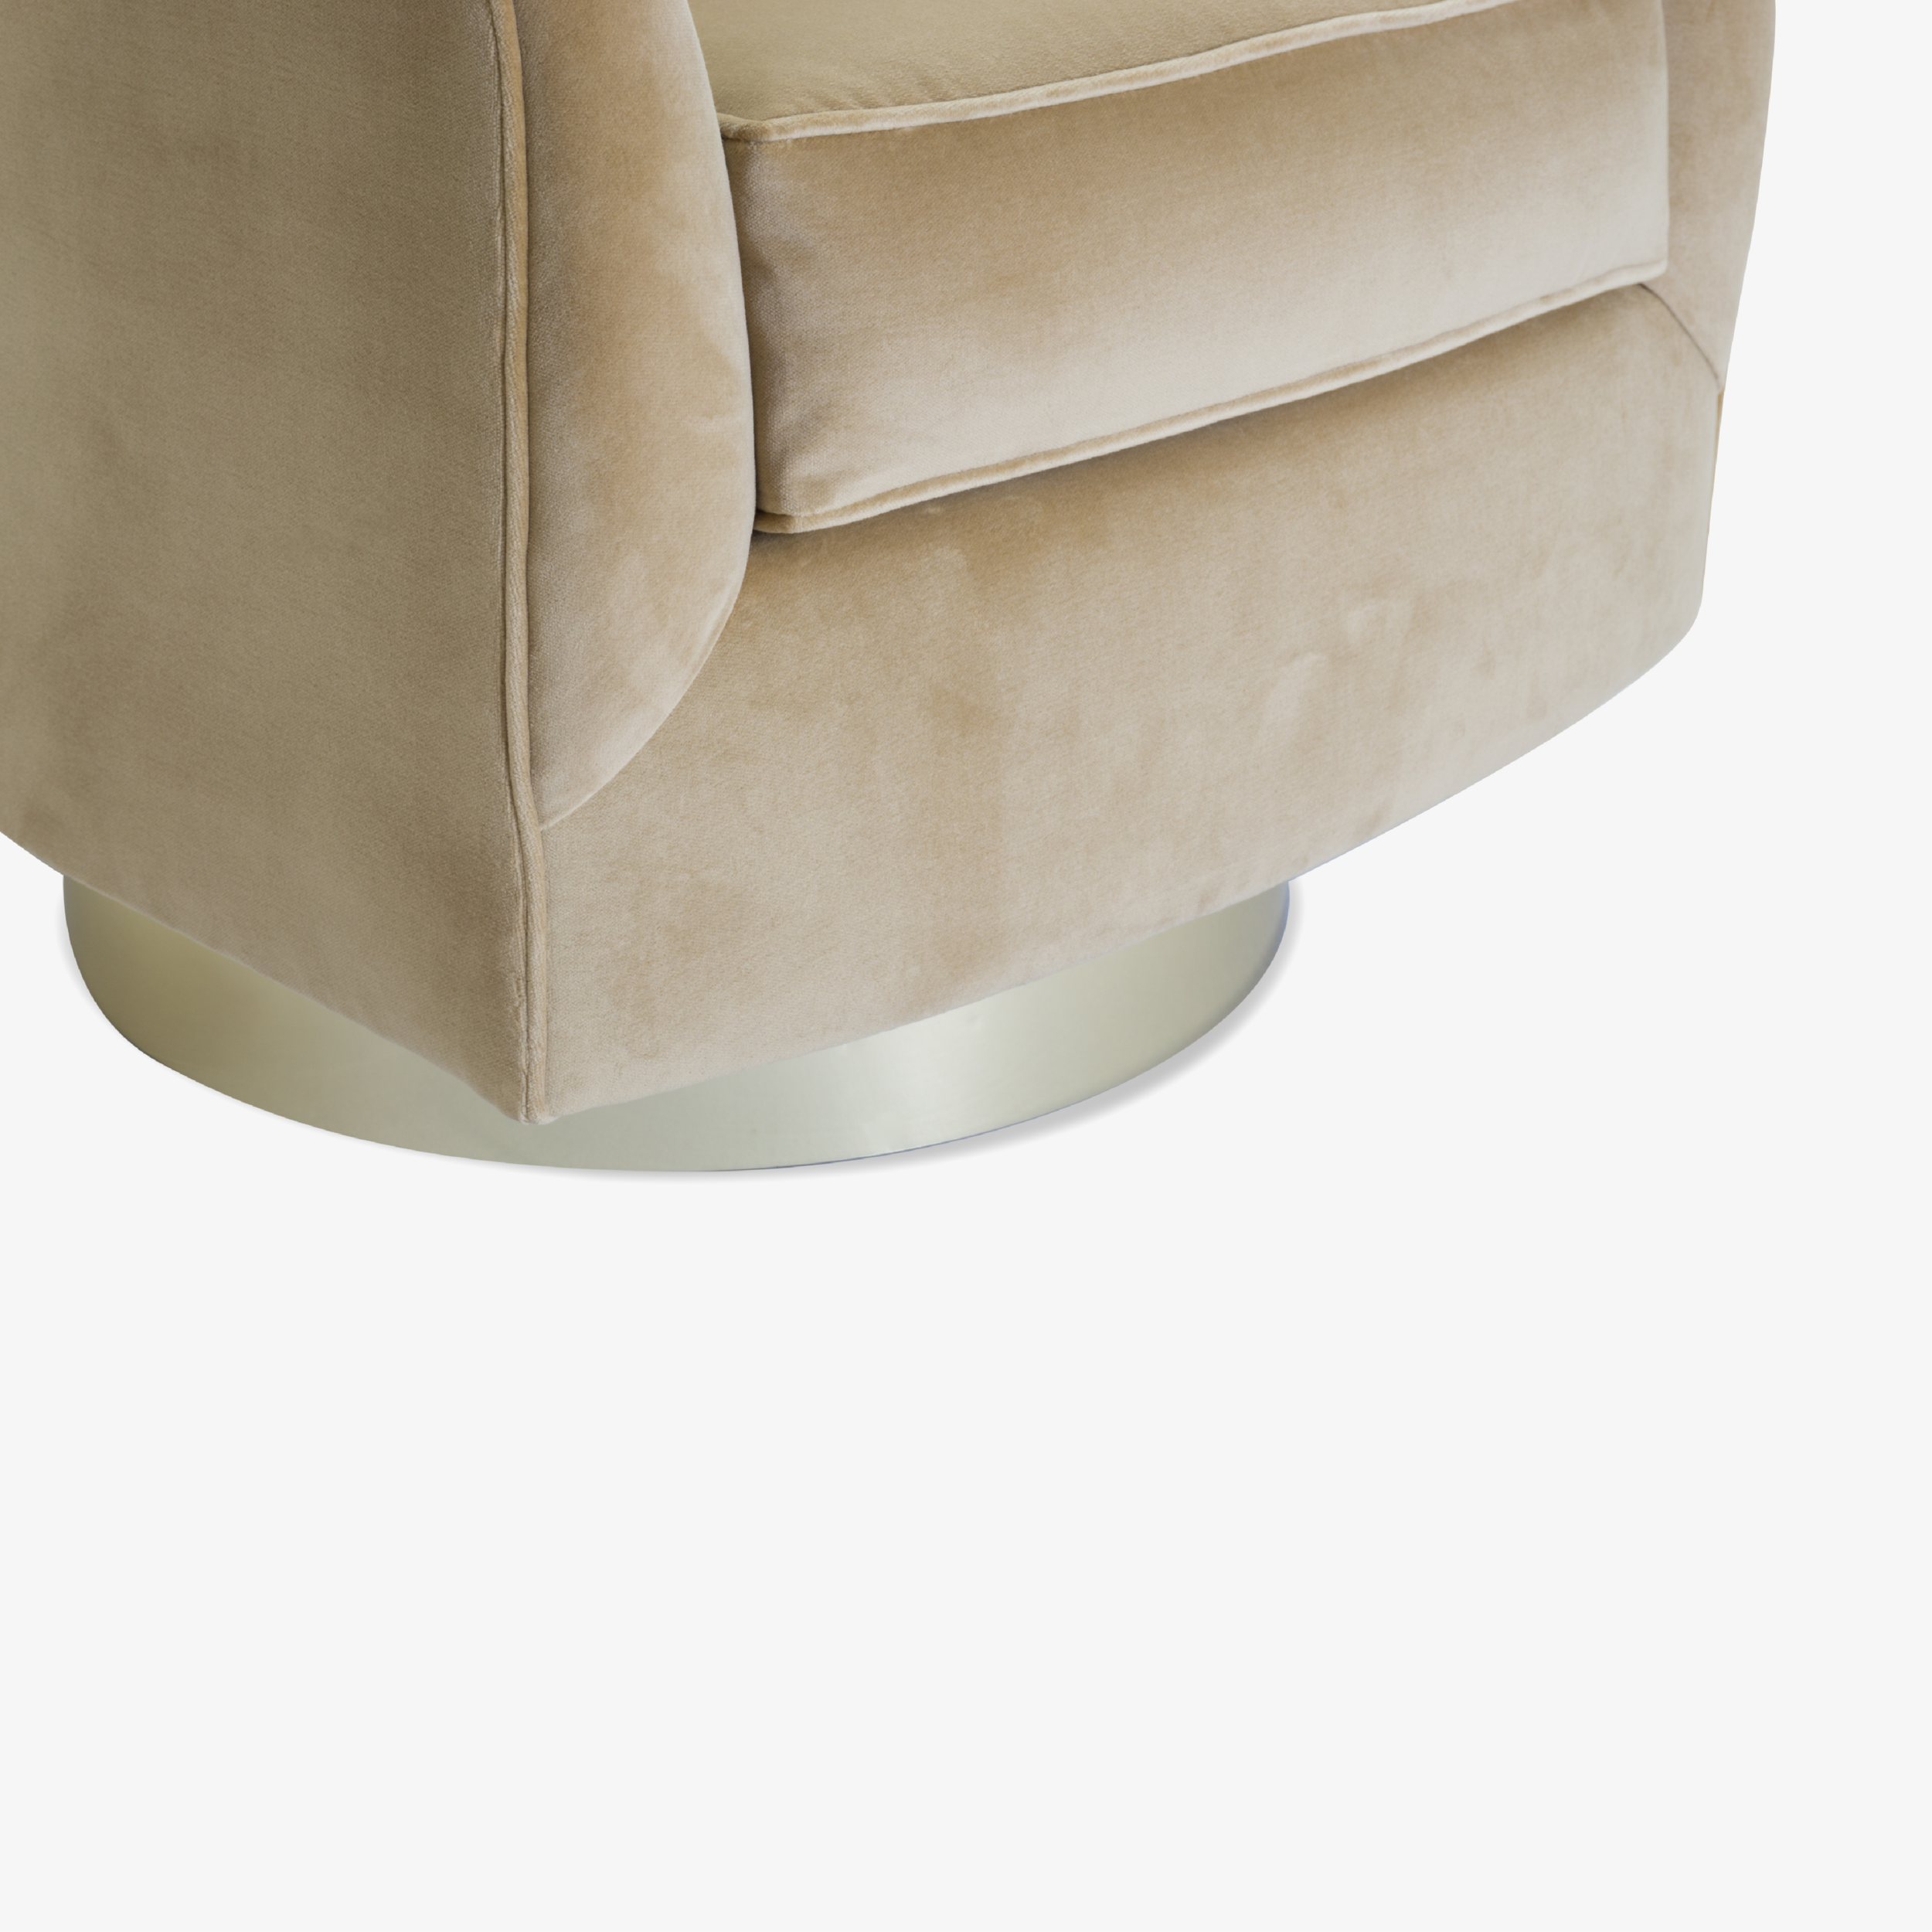 Swivel Tub Chairs with Brass Bases in Camel Velvet7.png